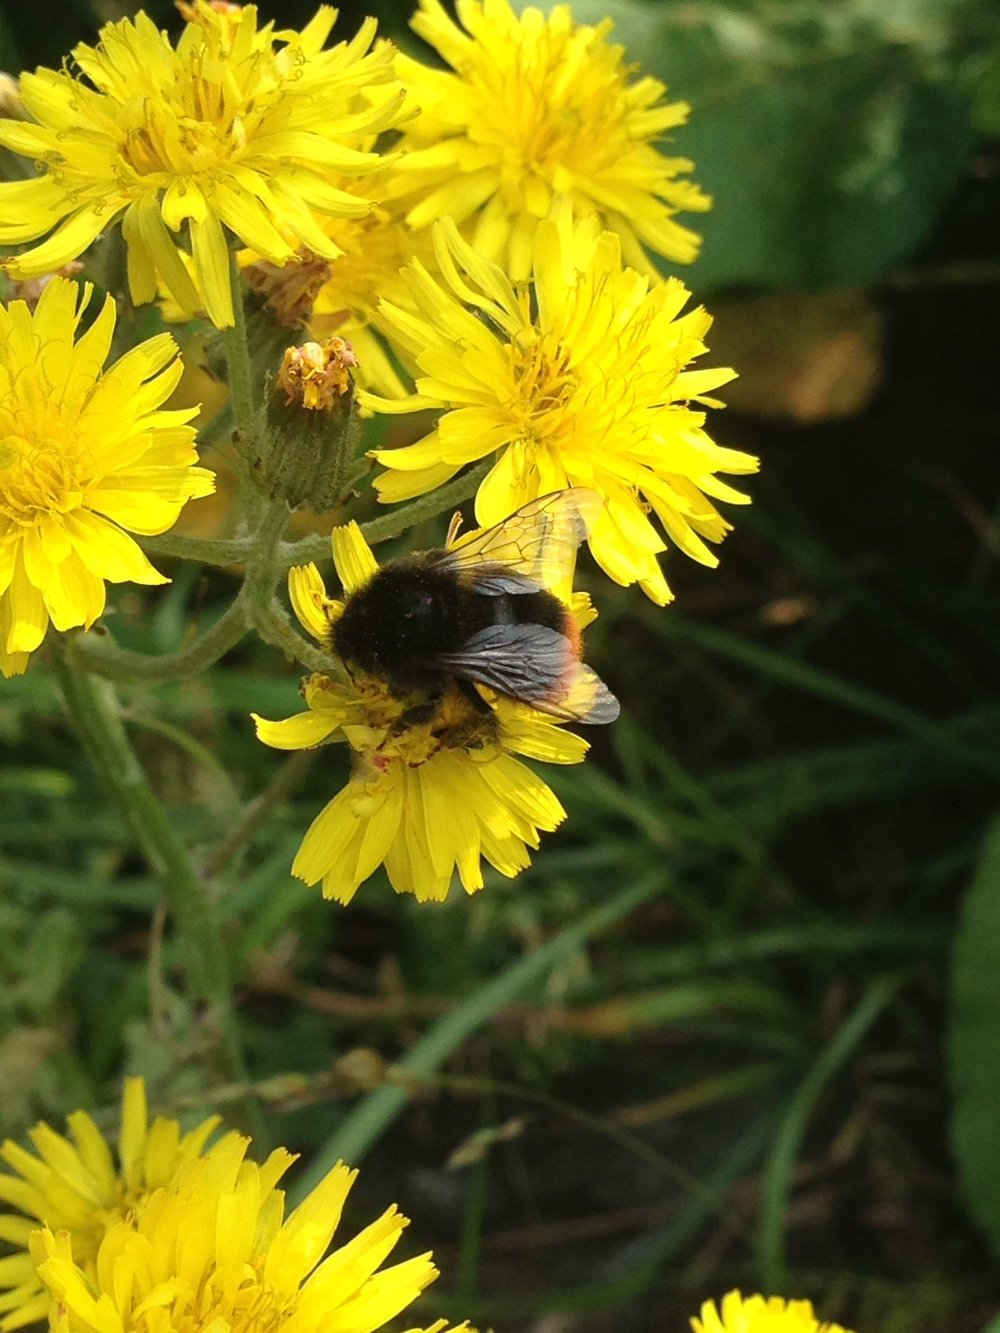 A red-tailed bumblebee (Bombus lapidarius)I snapped just outside the University of Birmingham